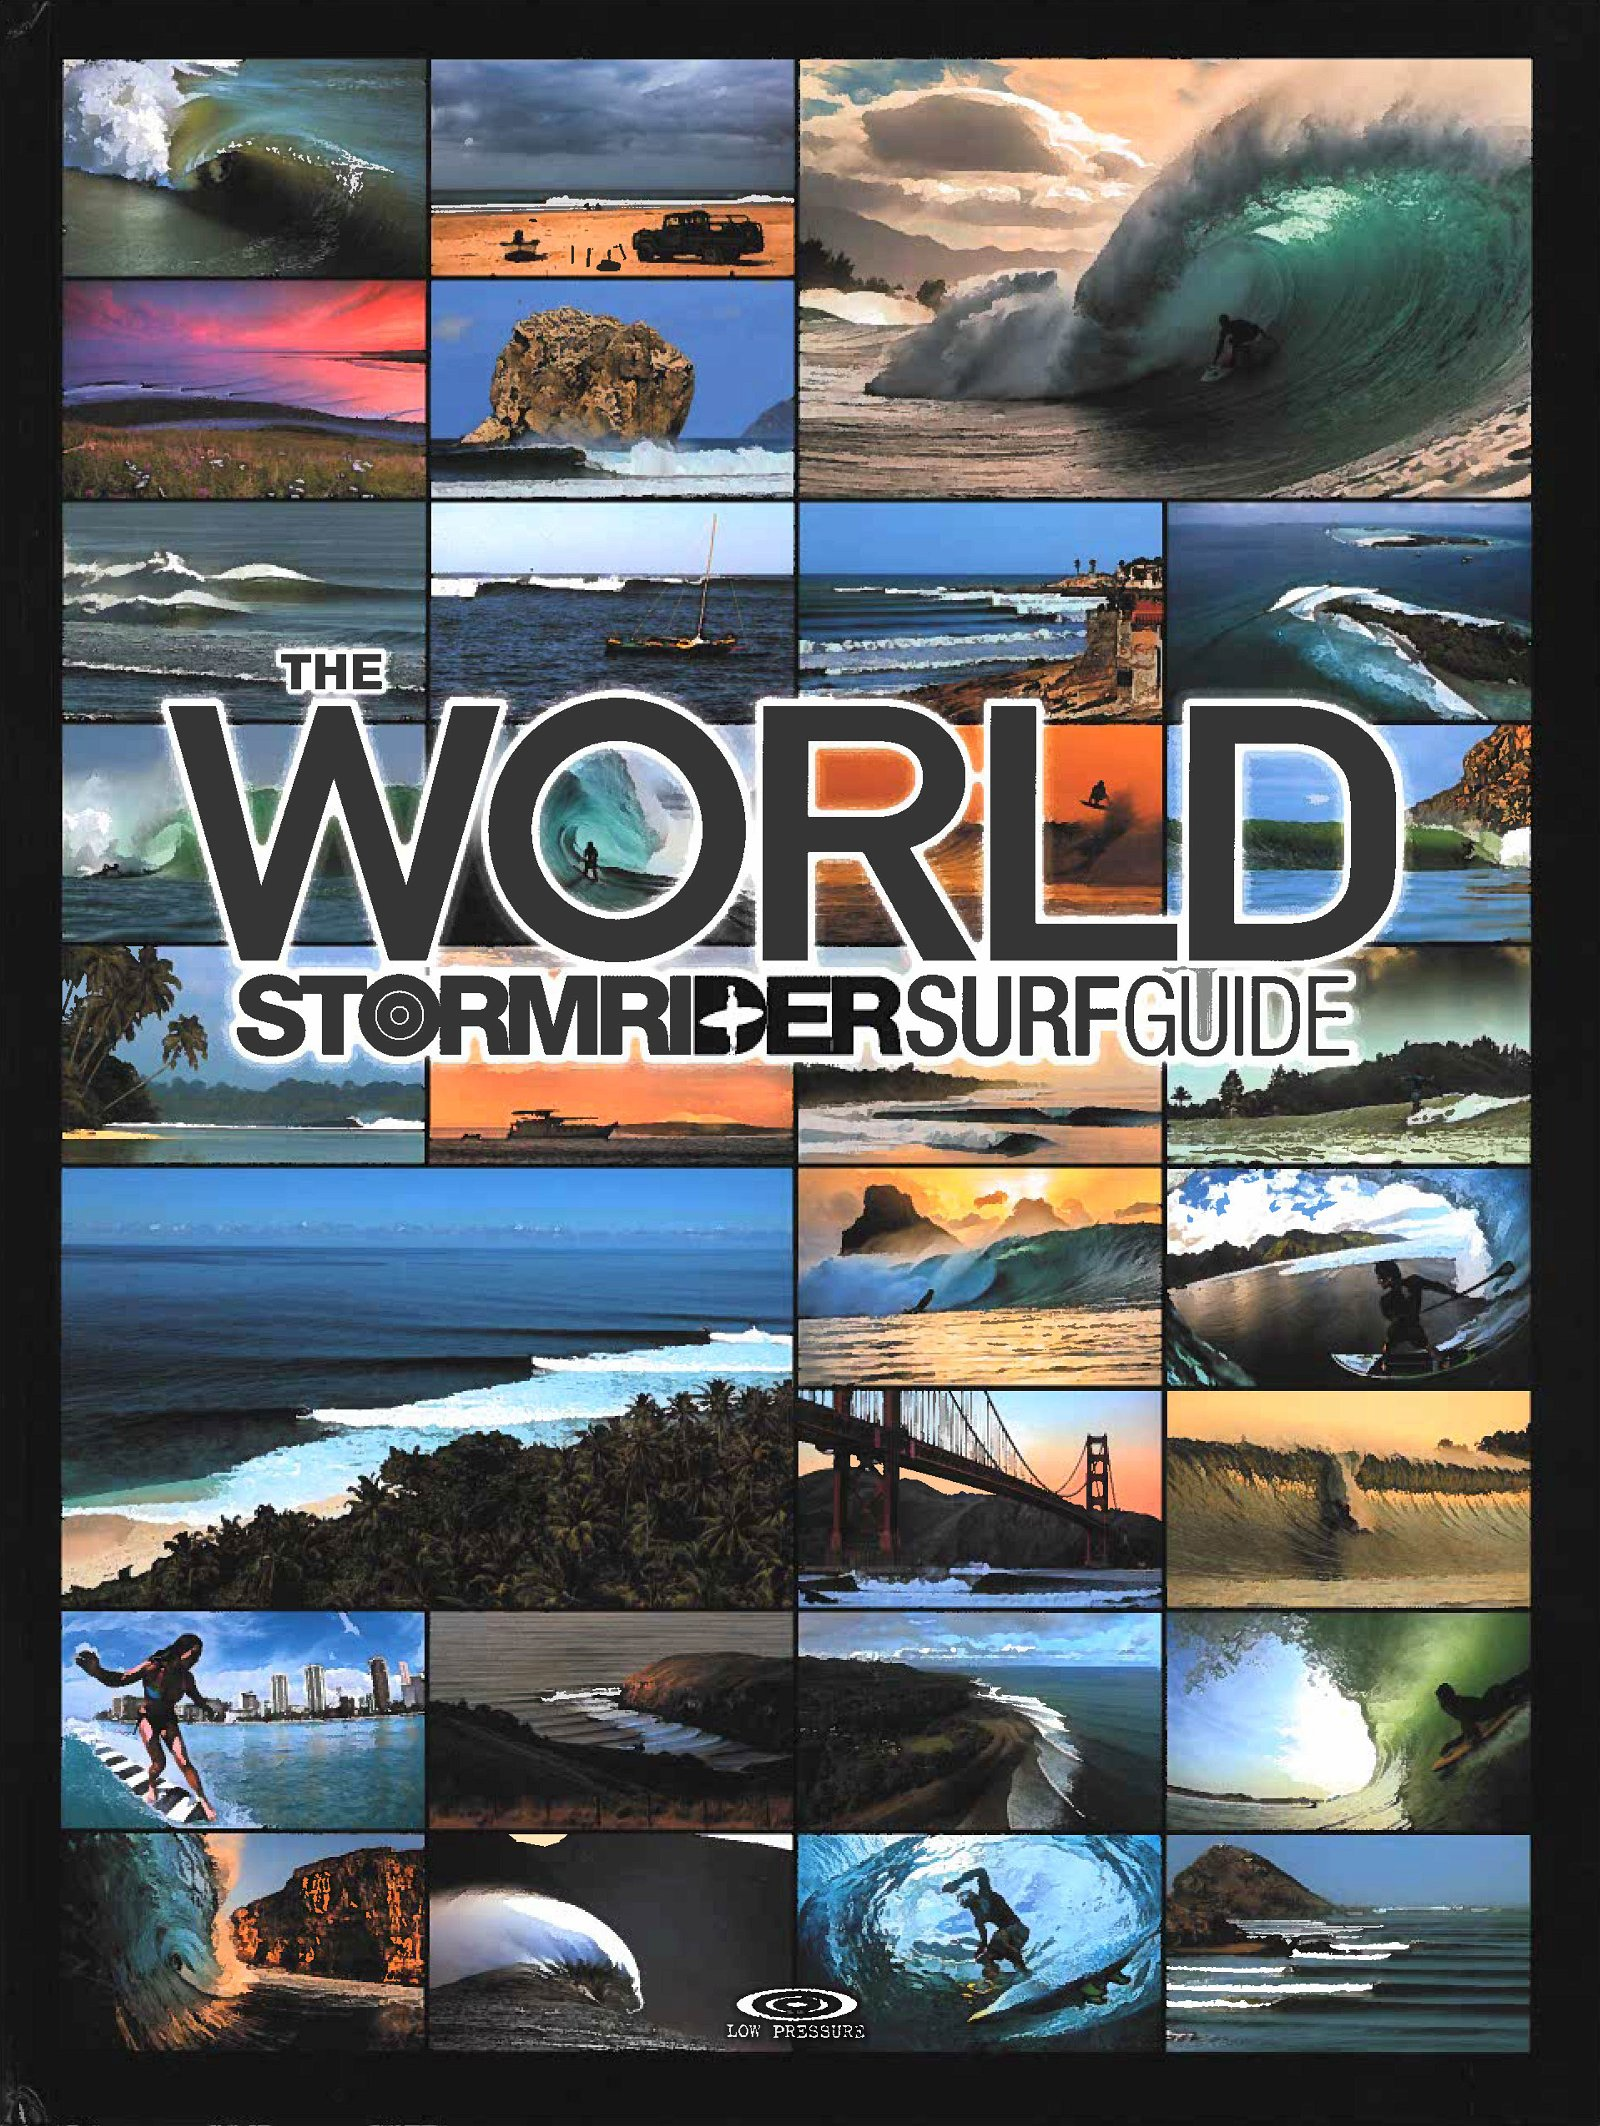 The World Stormrider Guide | wereldsurfgids 9781908520449  Low Pressures Publishing   Watersportboeken Wereld als geheel